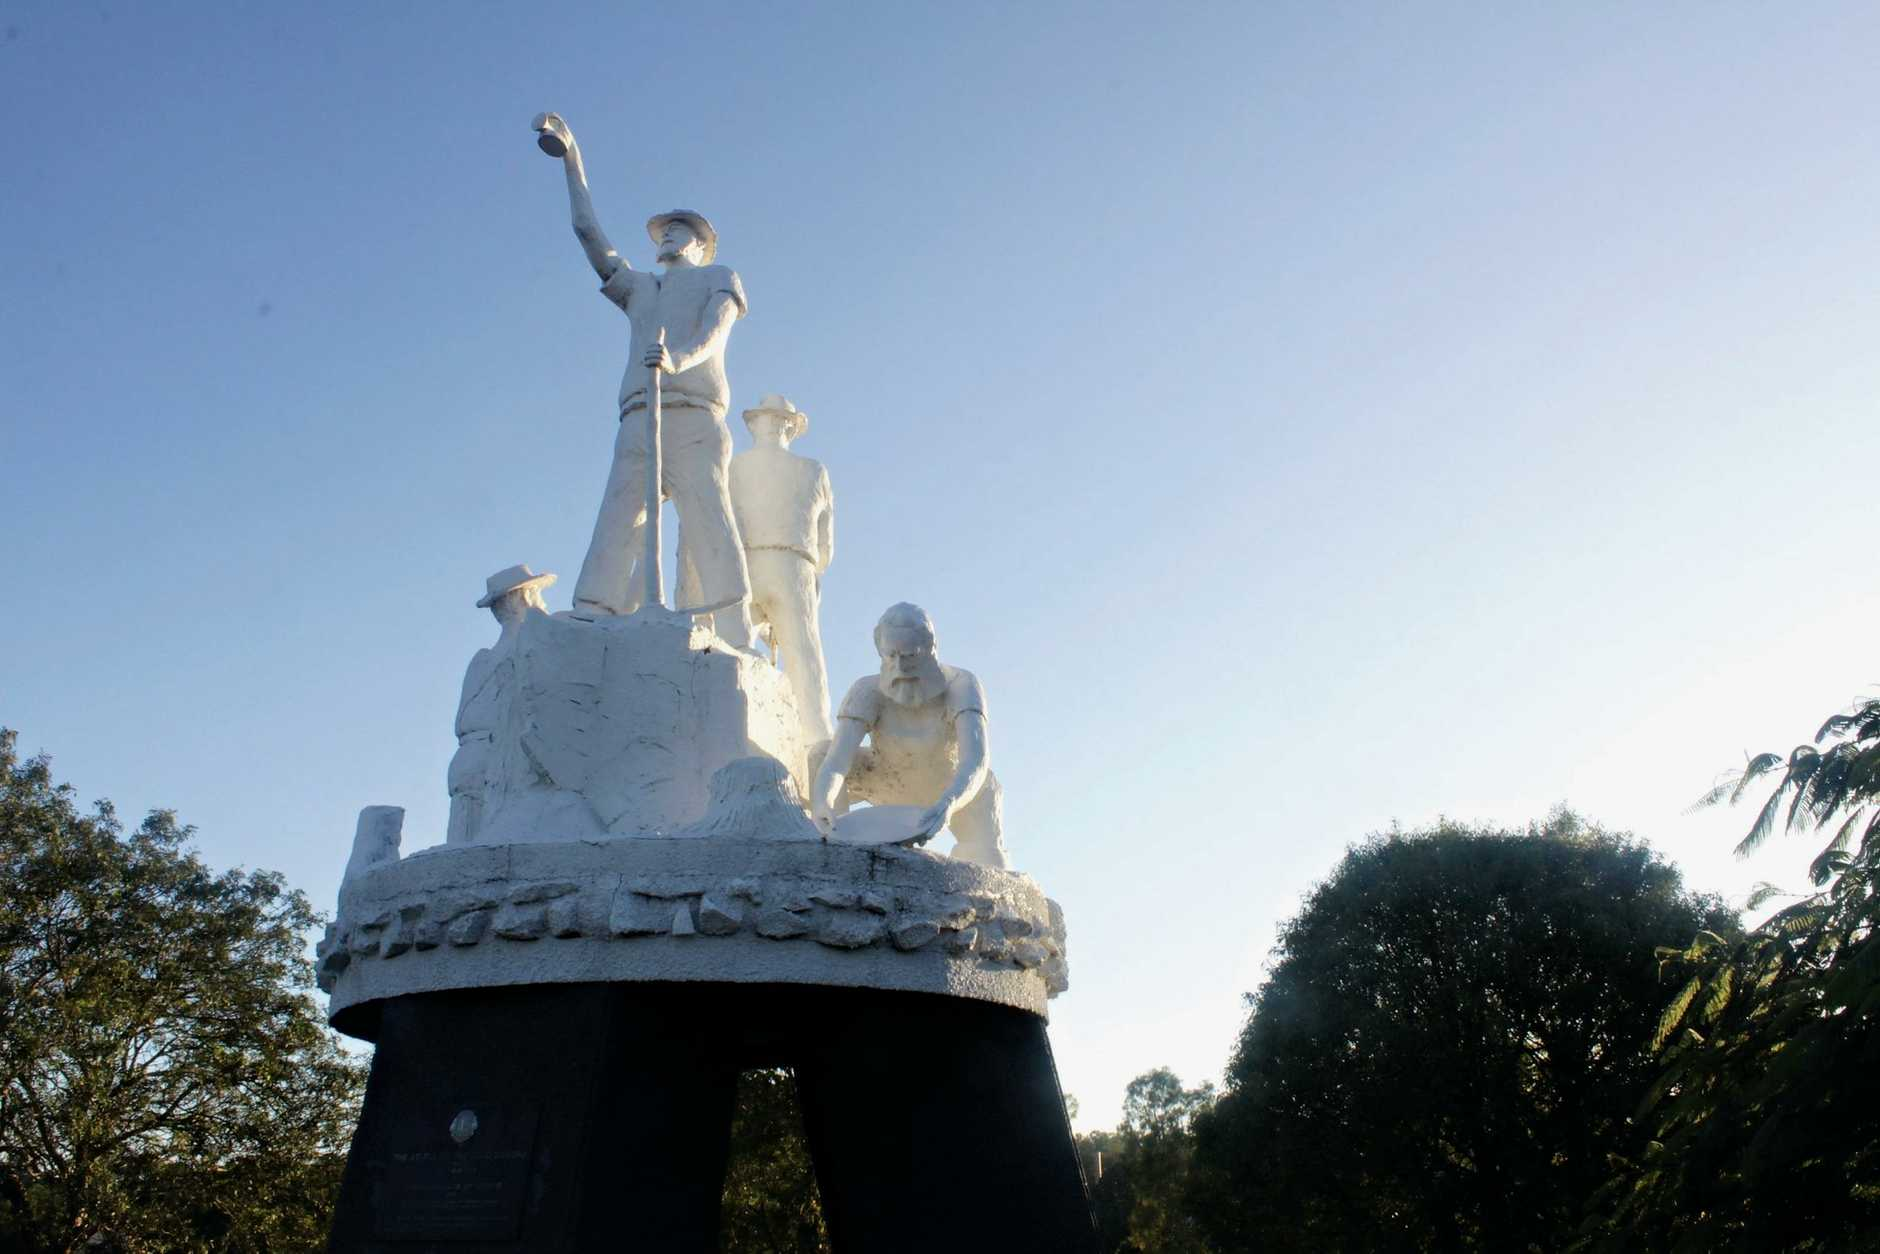 The gold mining statue on the Bruce Highway leading into Gympie harkens back to the city's golden past.